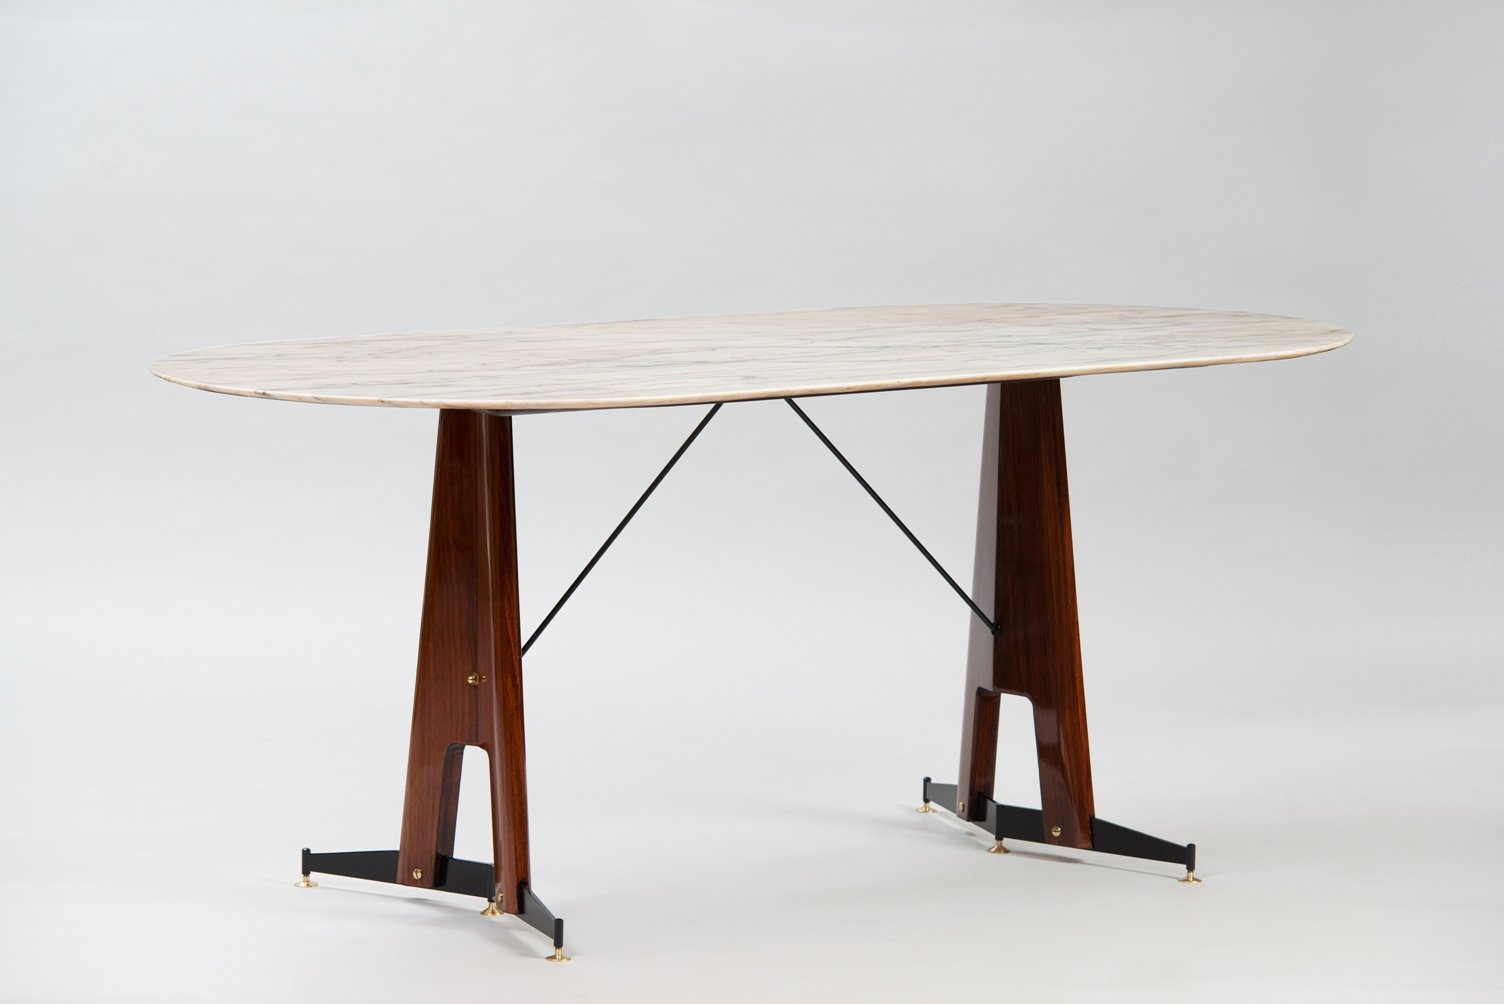 Table salle a manger marbre design for Table salle manger design